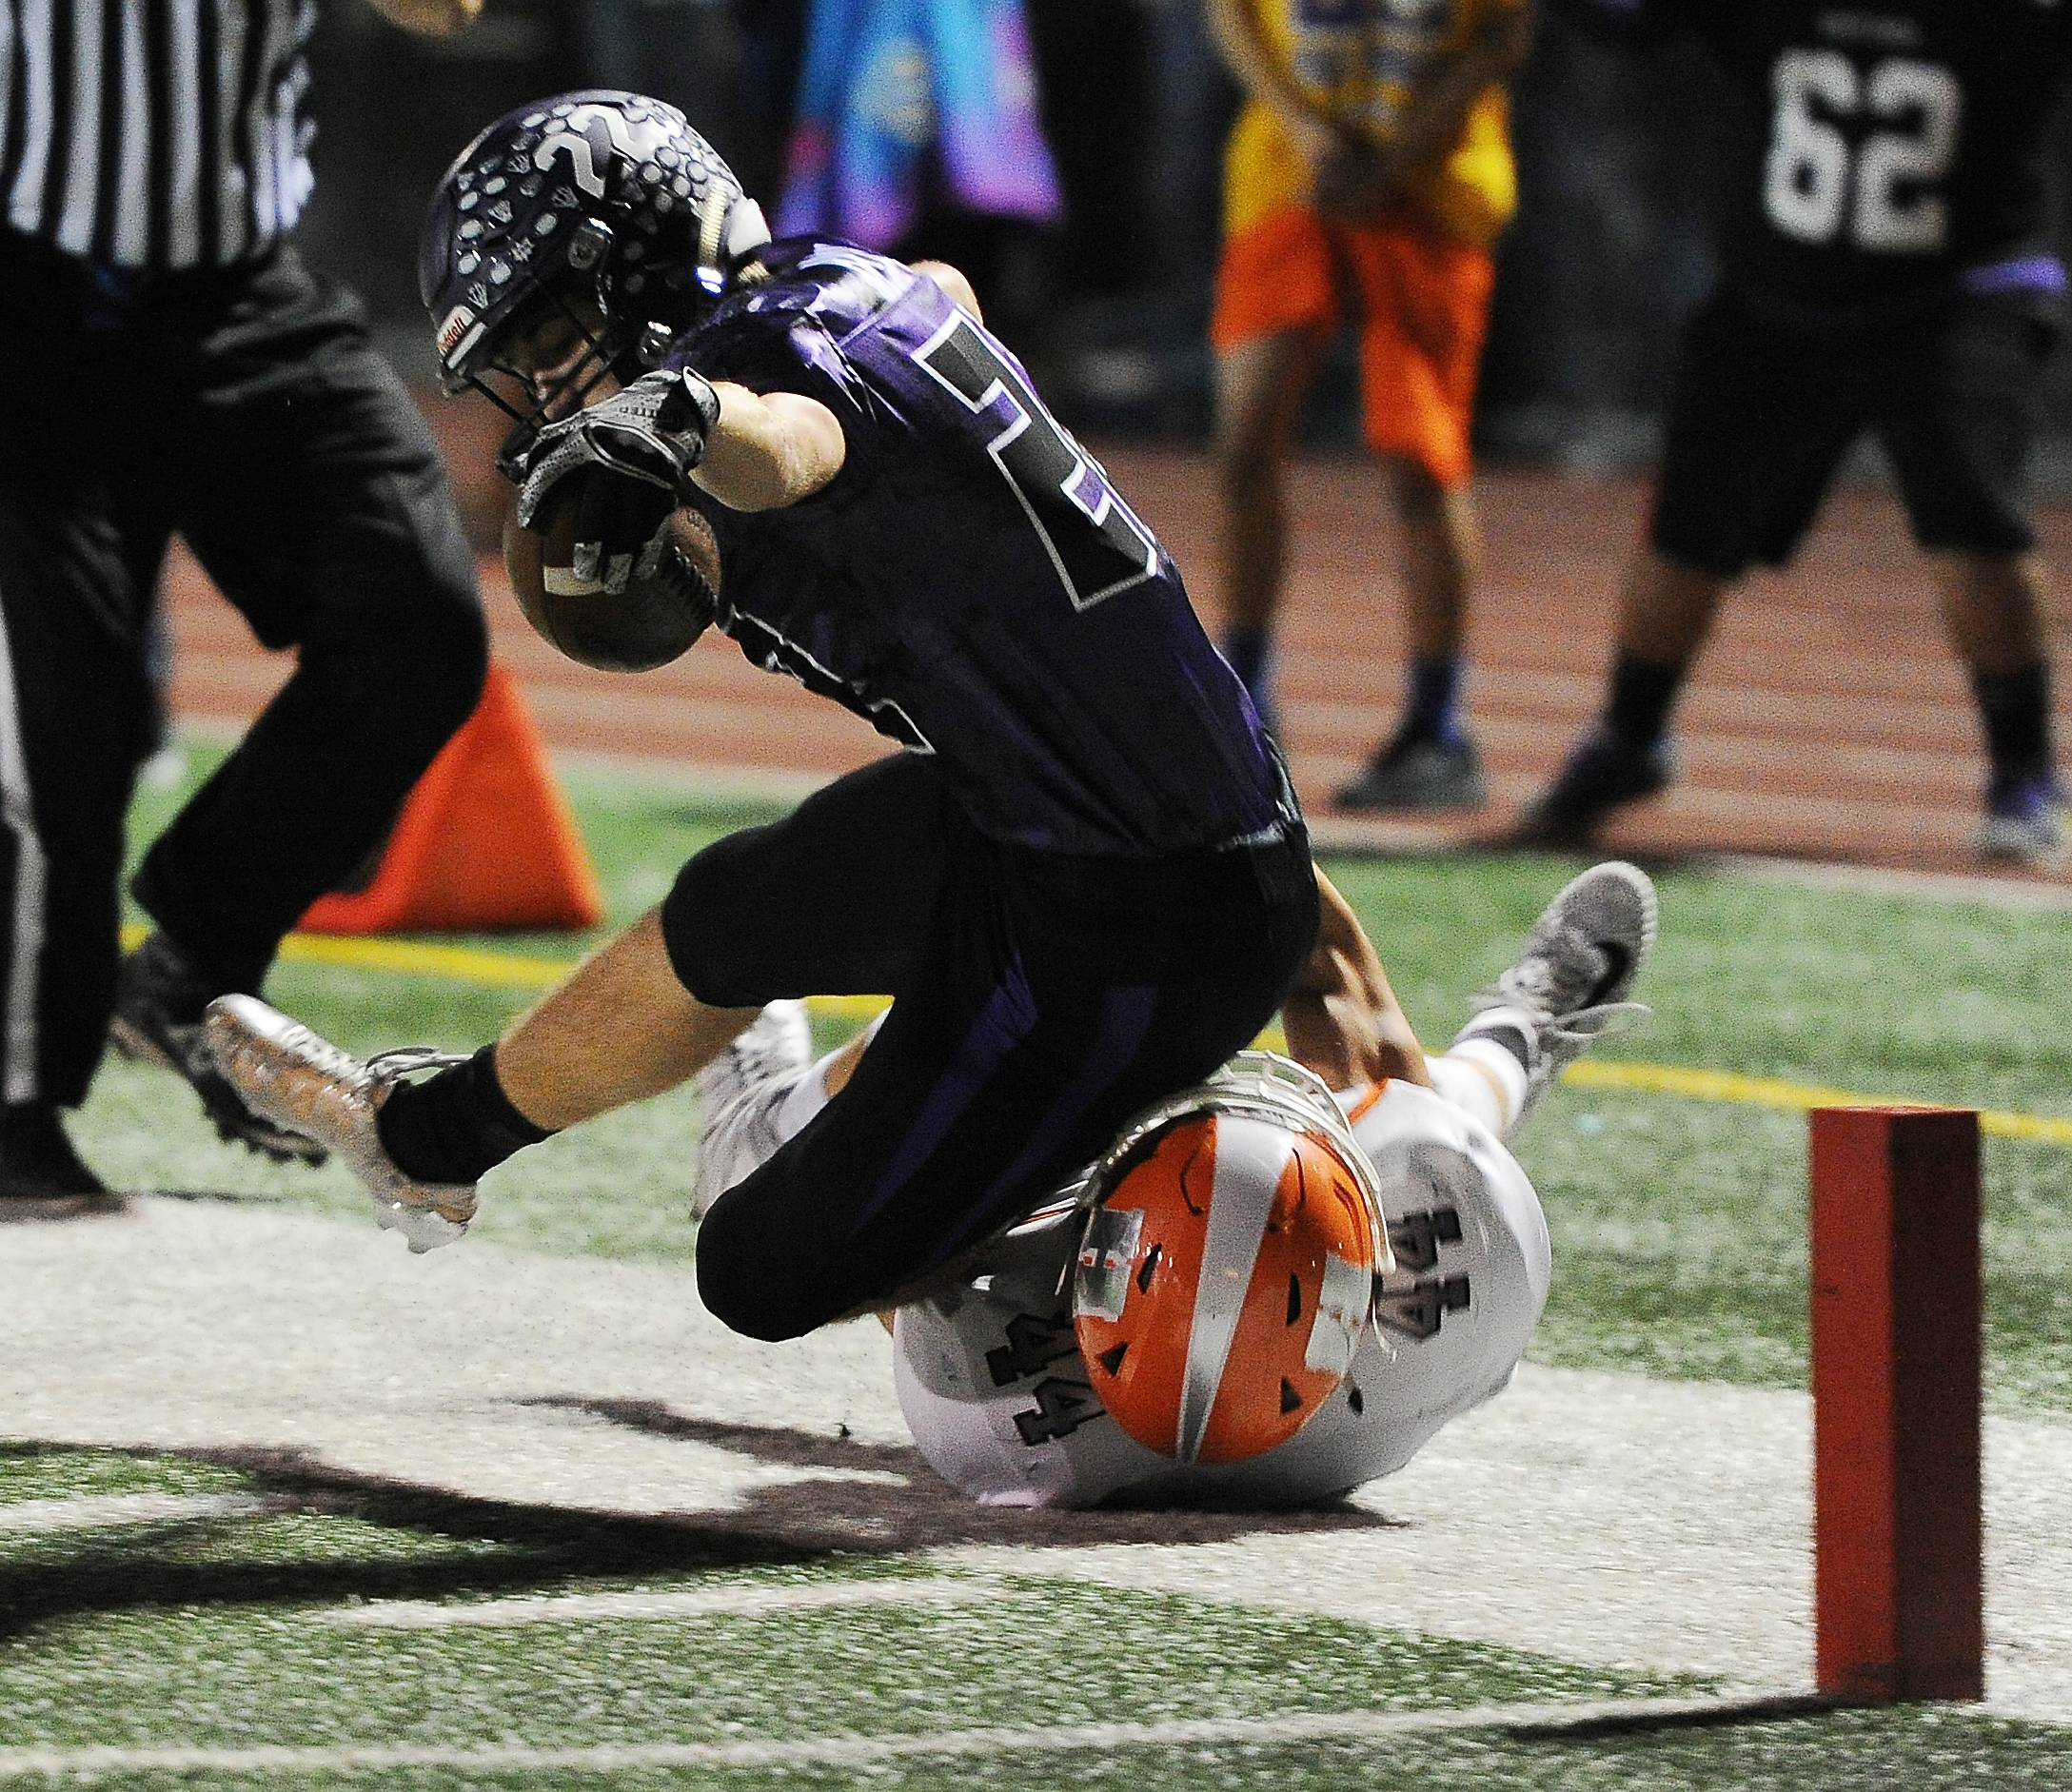 Rolling Meadows' Jared Axelrad reaches out on an attemped touchdown in Week 8, but Hersey's Colton Kamysz stops him short. Both teams have earned spots in the high school football playoffs -- against one another.